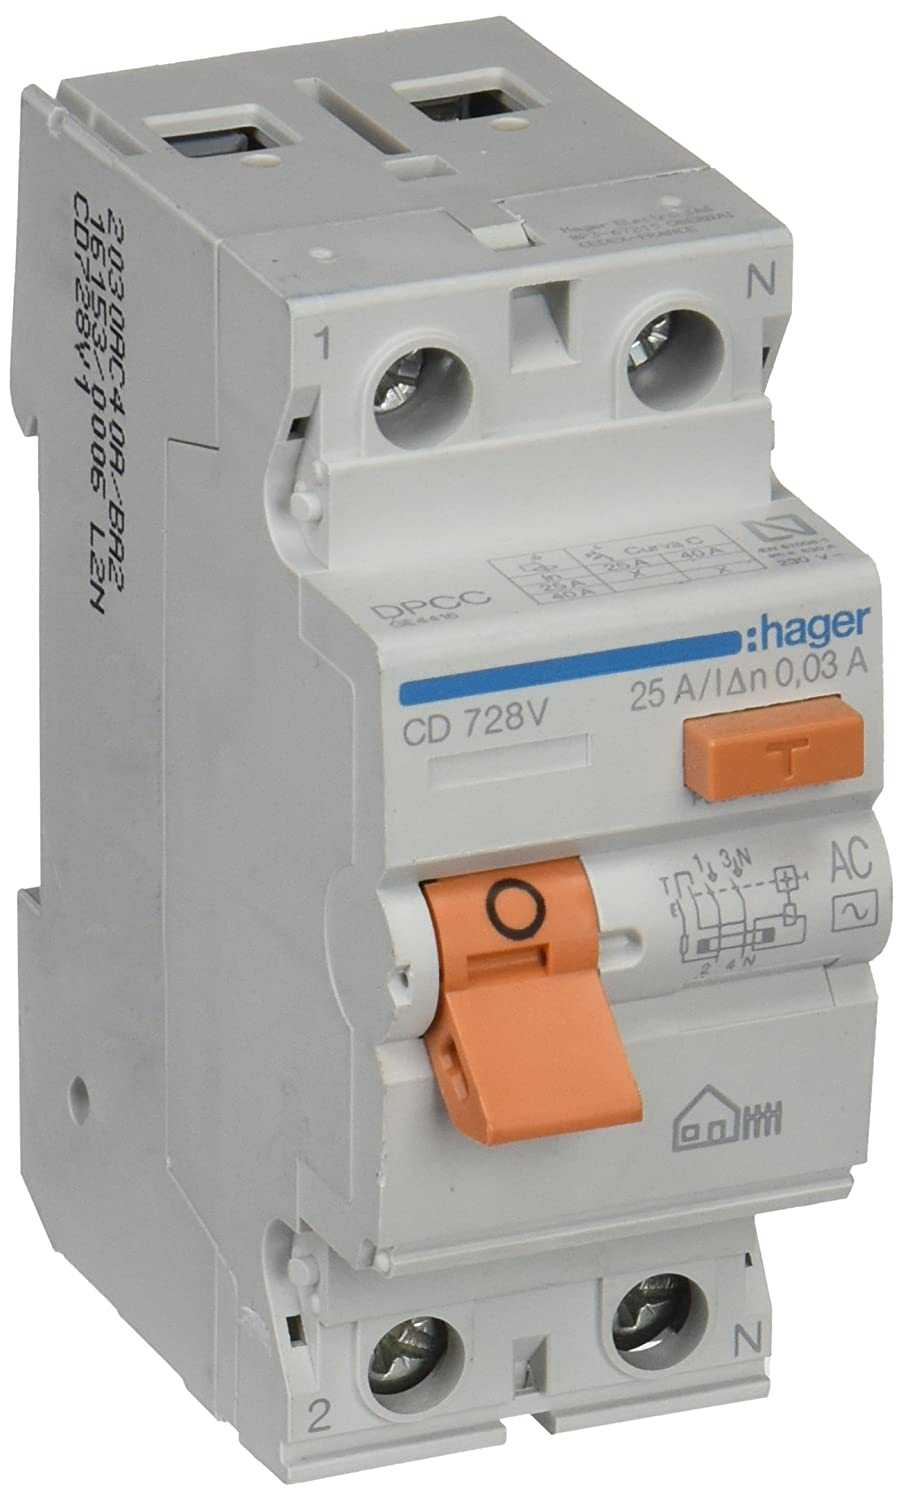 2P 30mA Hager CD728V Interruptor Diferencial Tipo AC 25A